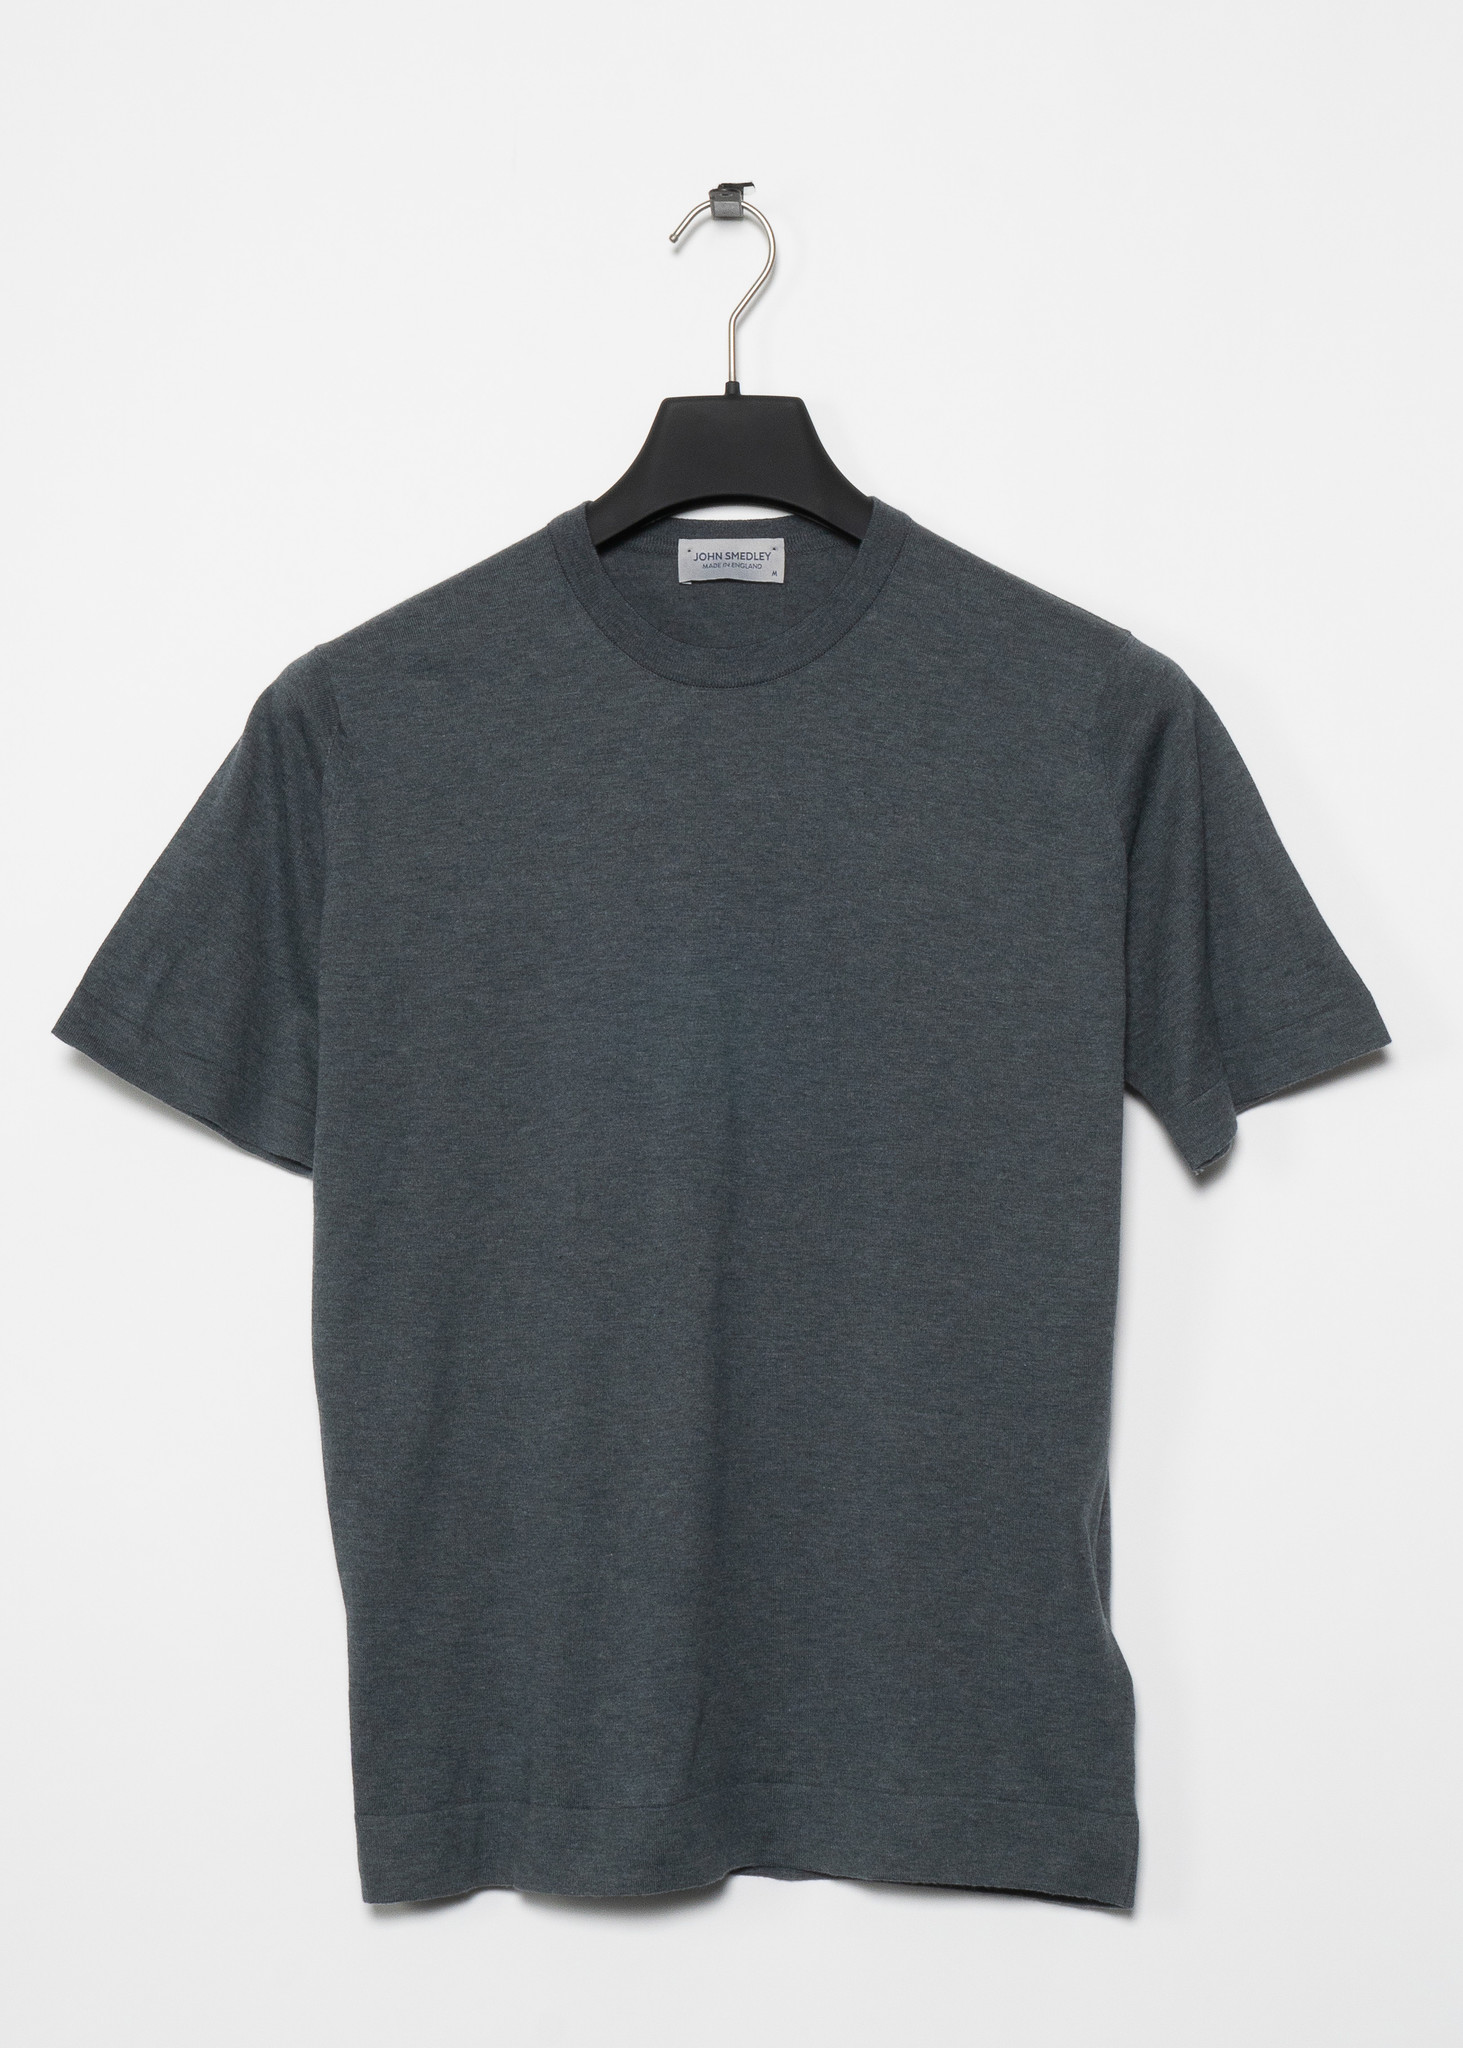 T-Shirt Lorca Welted Charbon